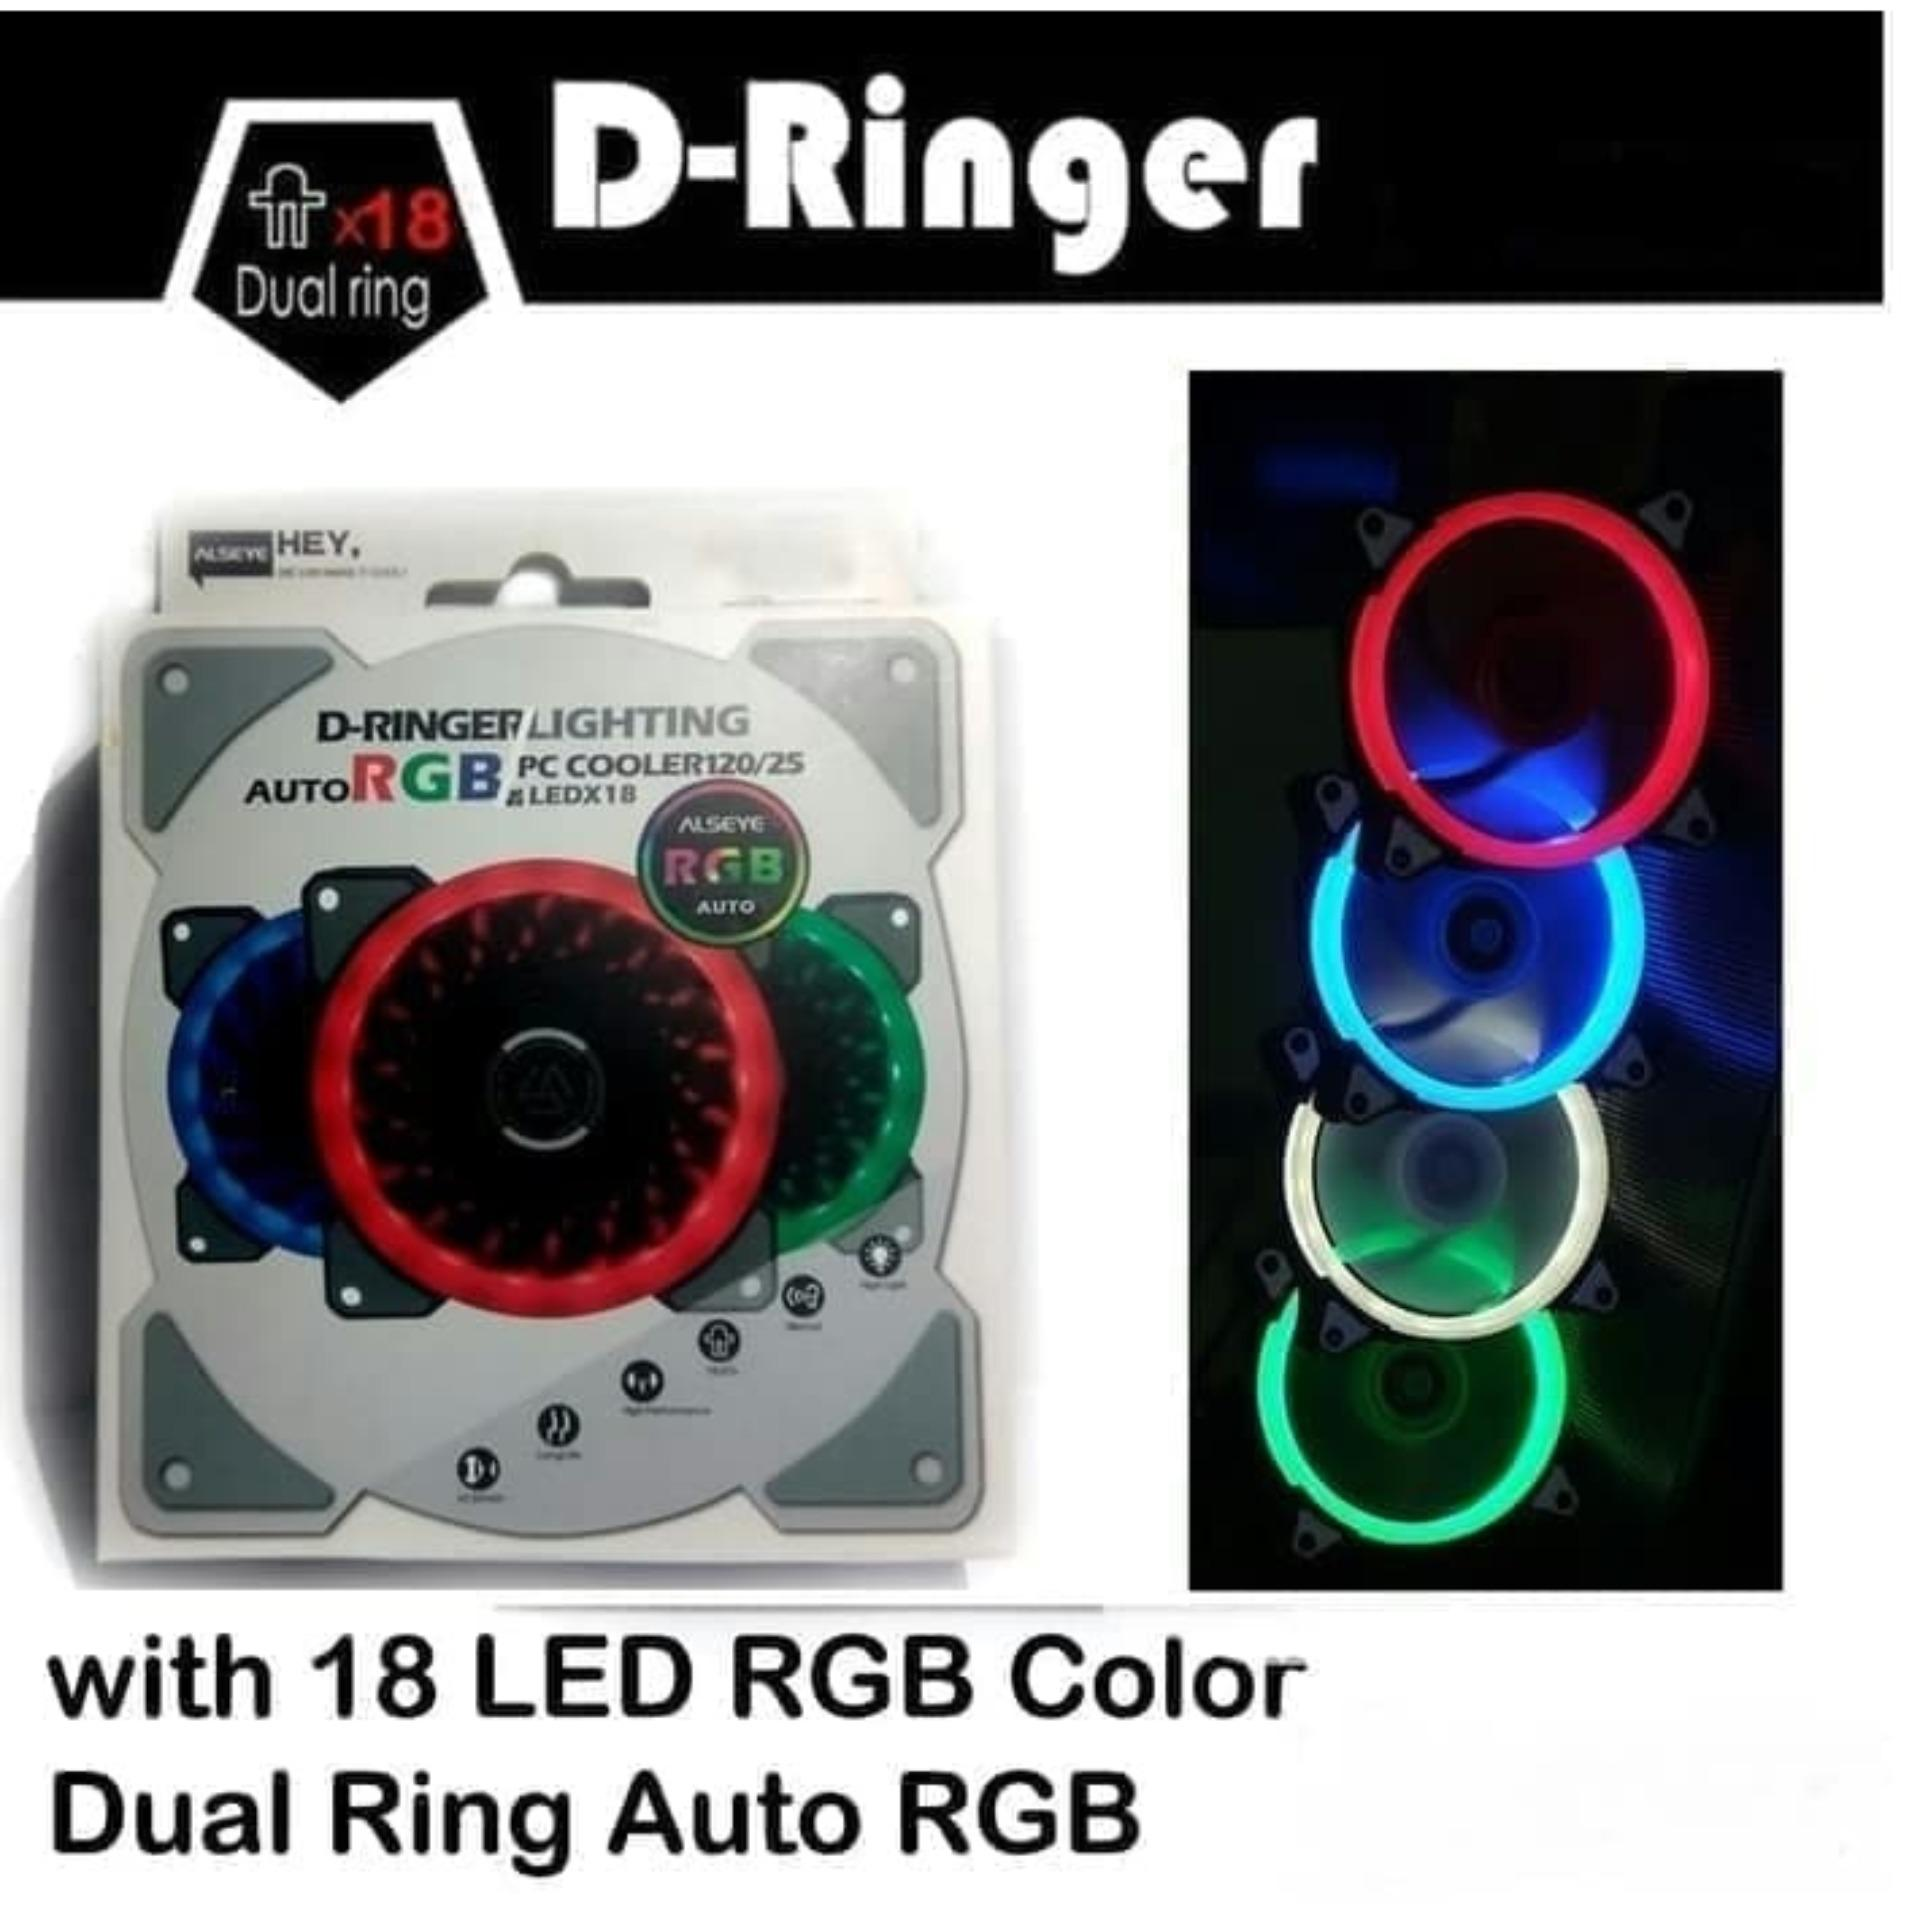 FAN CASING 12Cm ALSEYE D-Ringer 7 Color LED